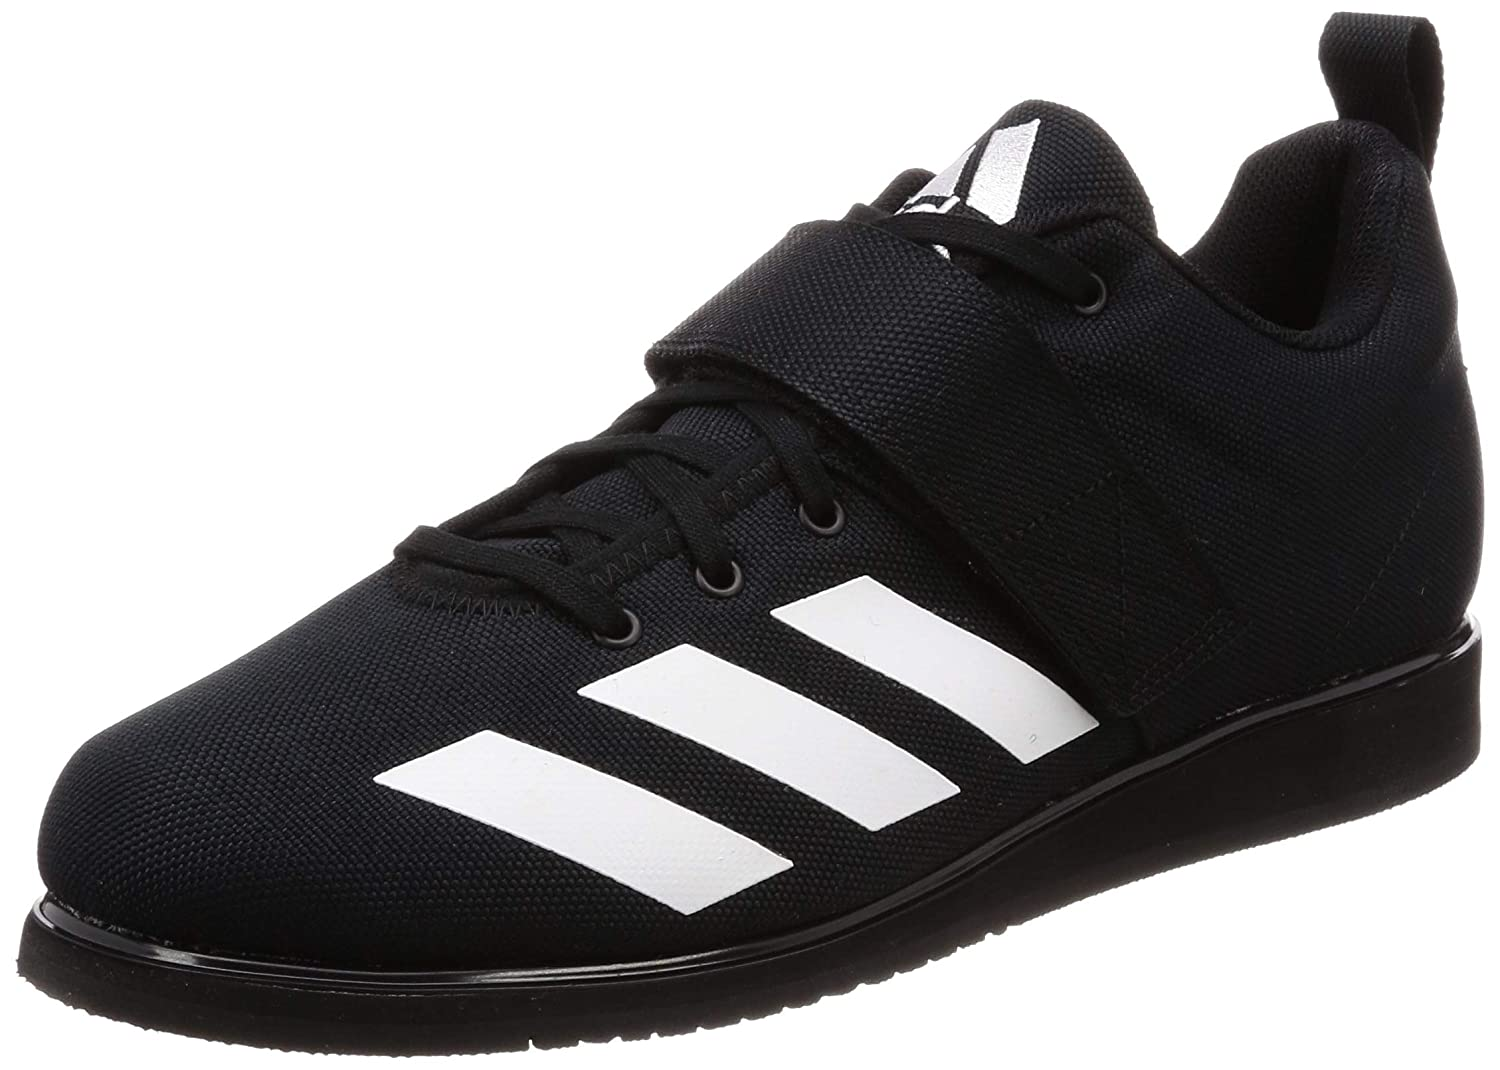 1c4dd9a598b3 adidas Men's Powerlift 4 Bc0343 Fitness Shoes